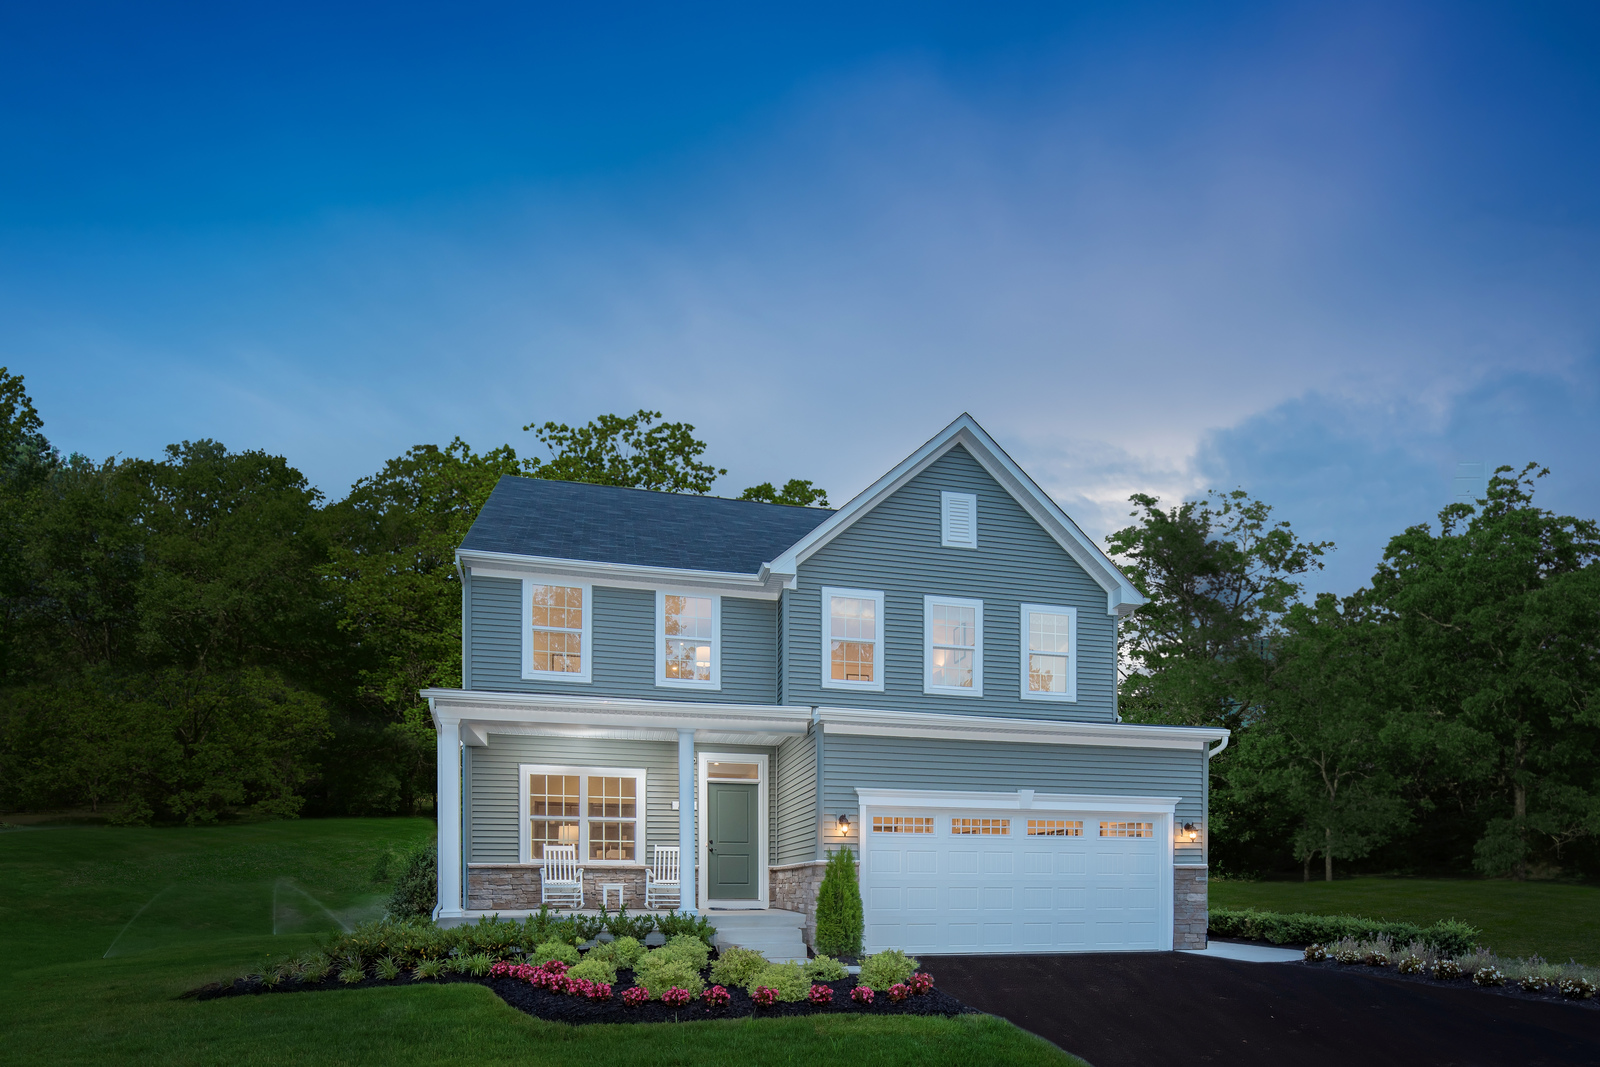 New Homes For Sale At Silverwood In Yorktown Va Within The York